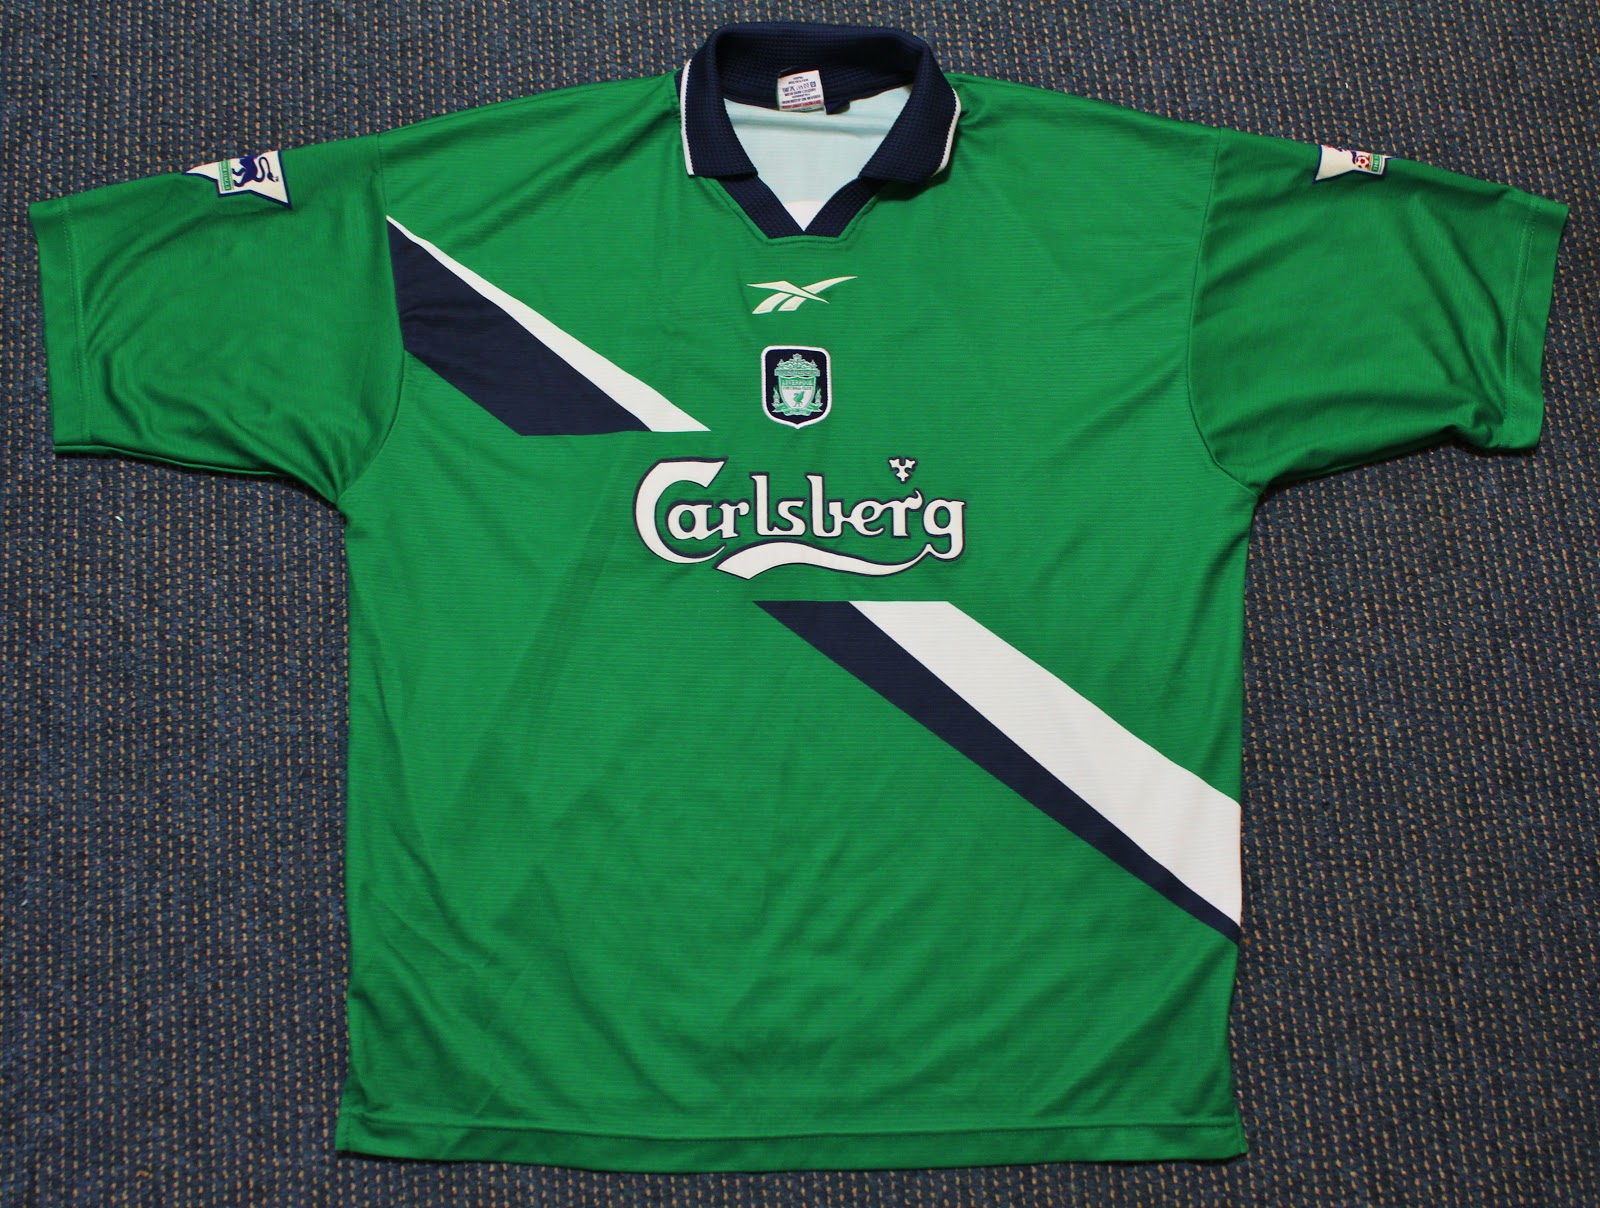 6786891bab1 Reebok Liverpool FC 1999 2000 Away Jersey Official release for 1999 2000  season. With Liverpool FC badge embroodered. Reebokmlogo and sponsor  CARLSBERG heat ...